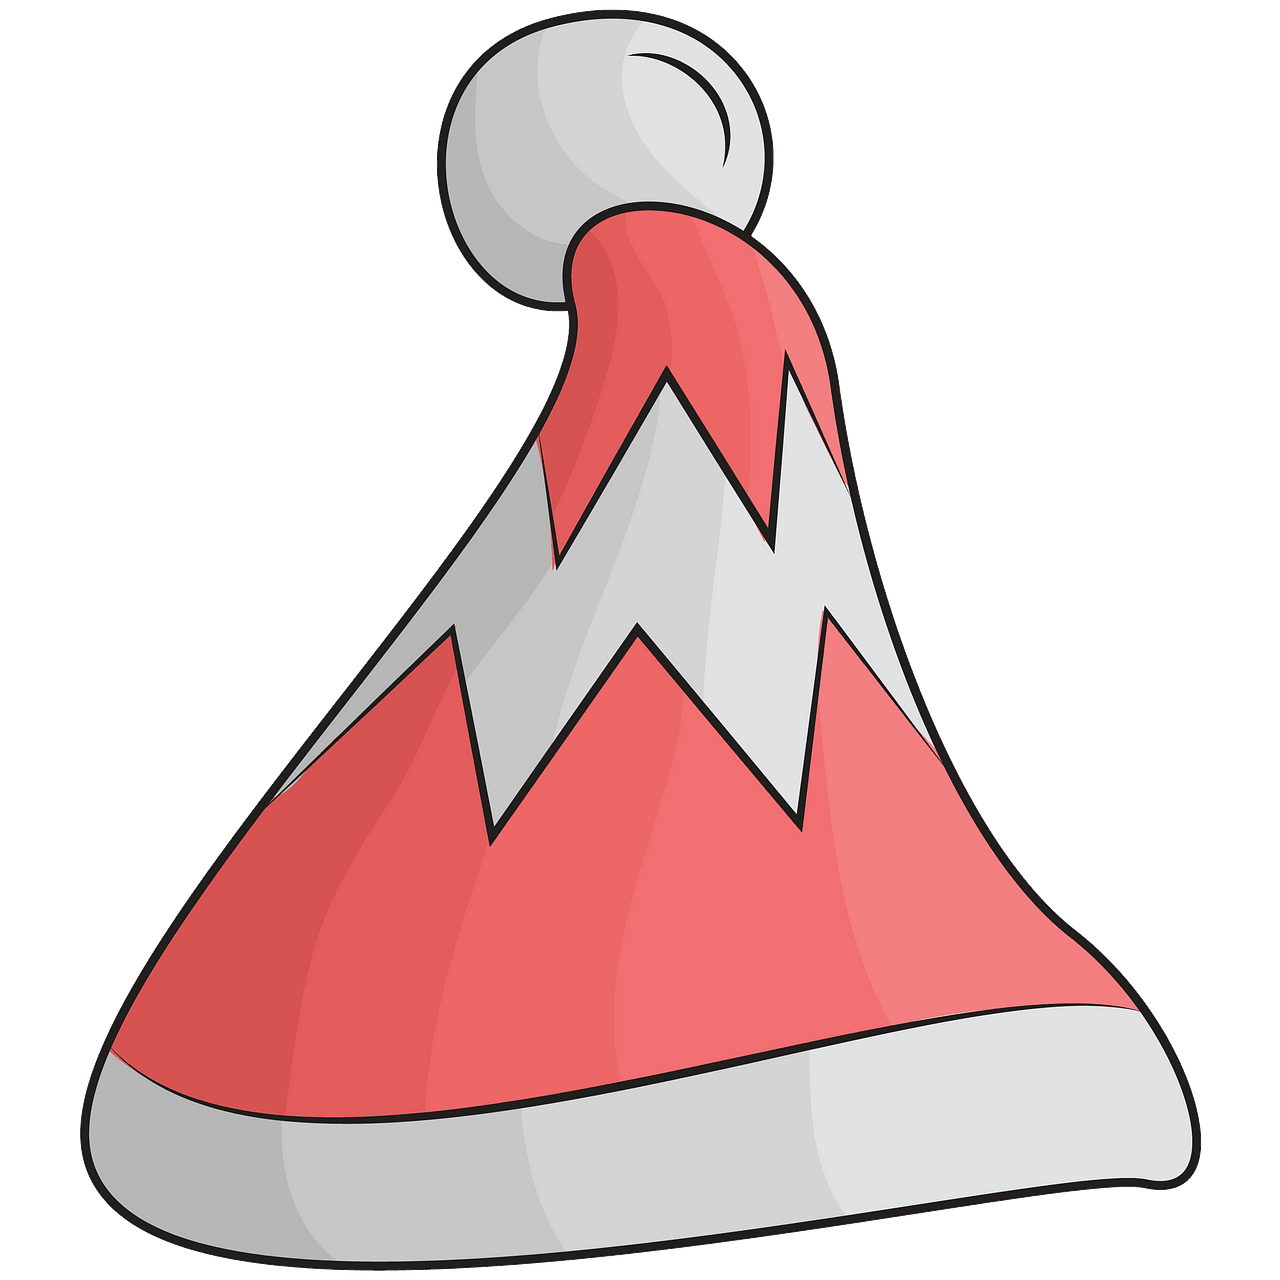 Red winter hat clipart. Free download..